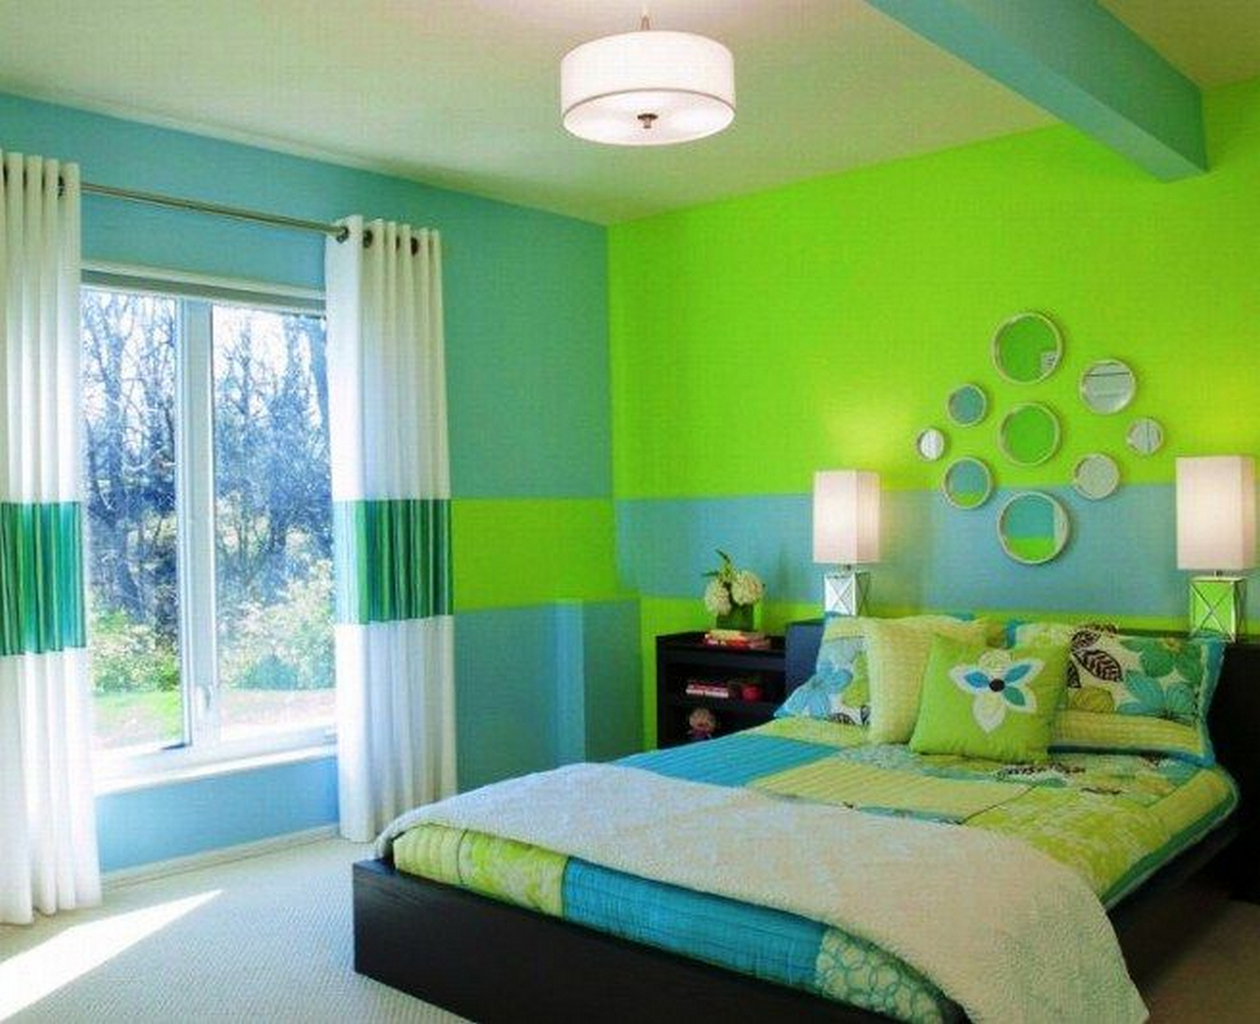 6 Cozy Bedroom Ideas for Small Bedroom Layout That You Never Know | Roy Home Design